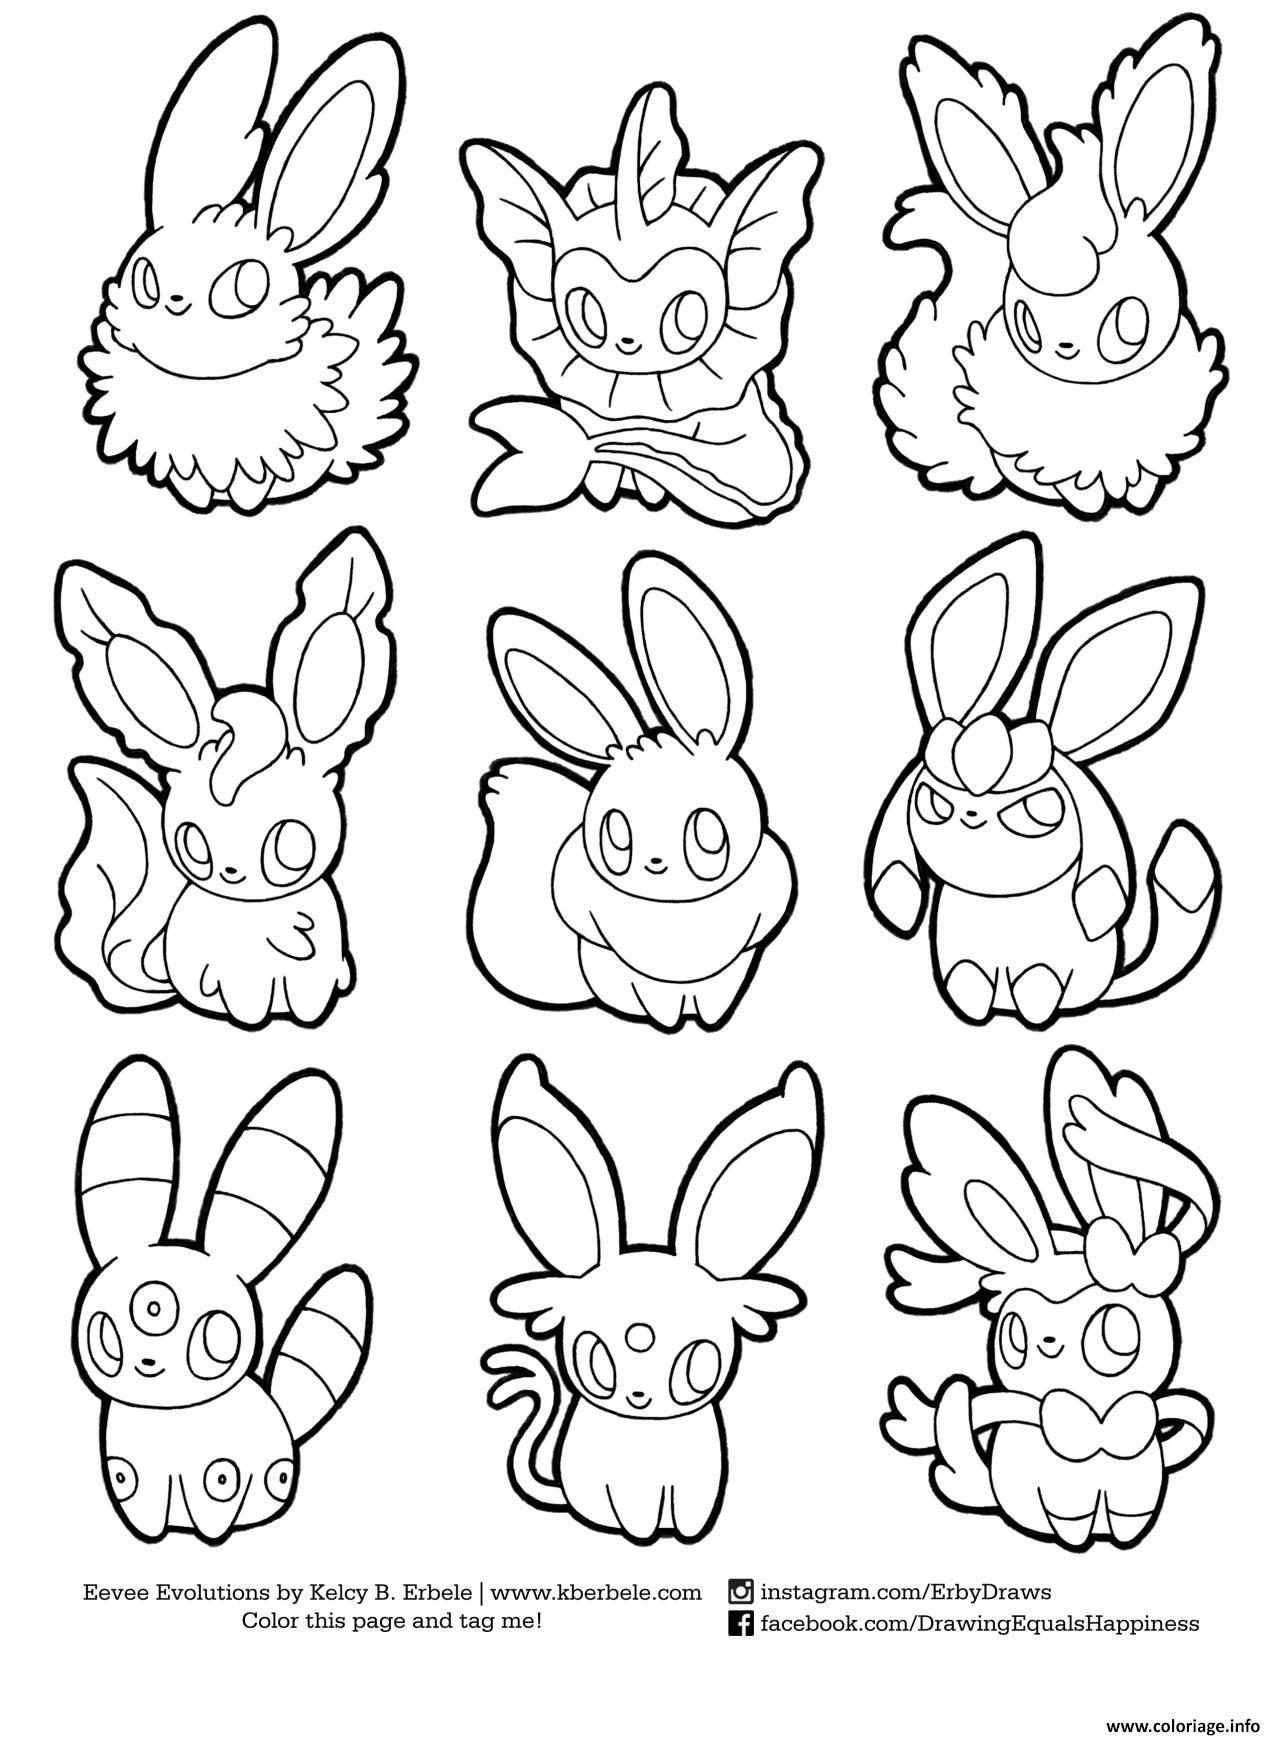 Coloriage Pokemon Eevee Evolutions List Dessin À Imprimer intérieur Coloriage Pokemon Evoli